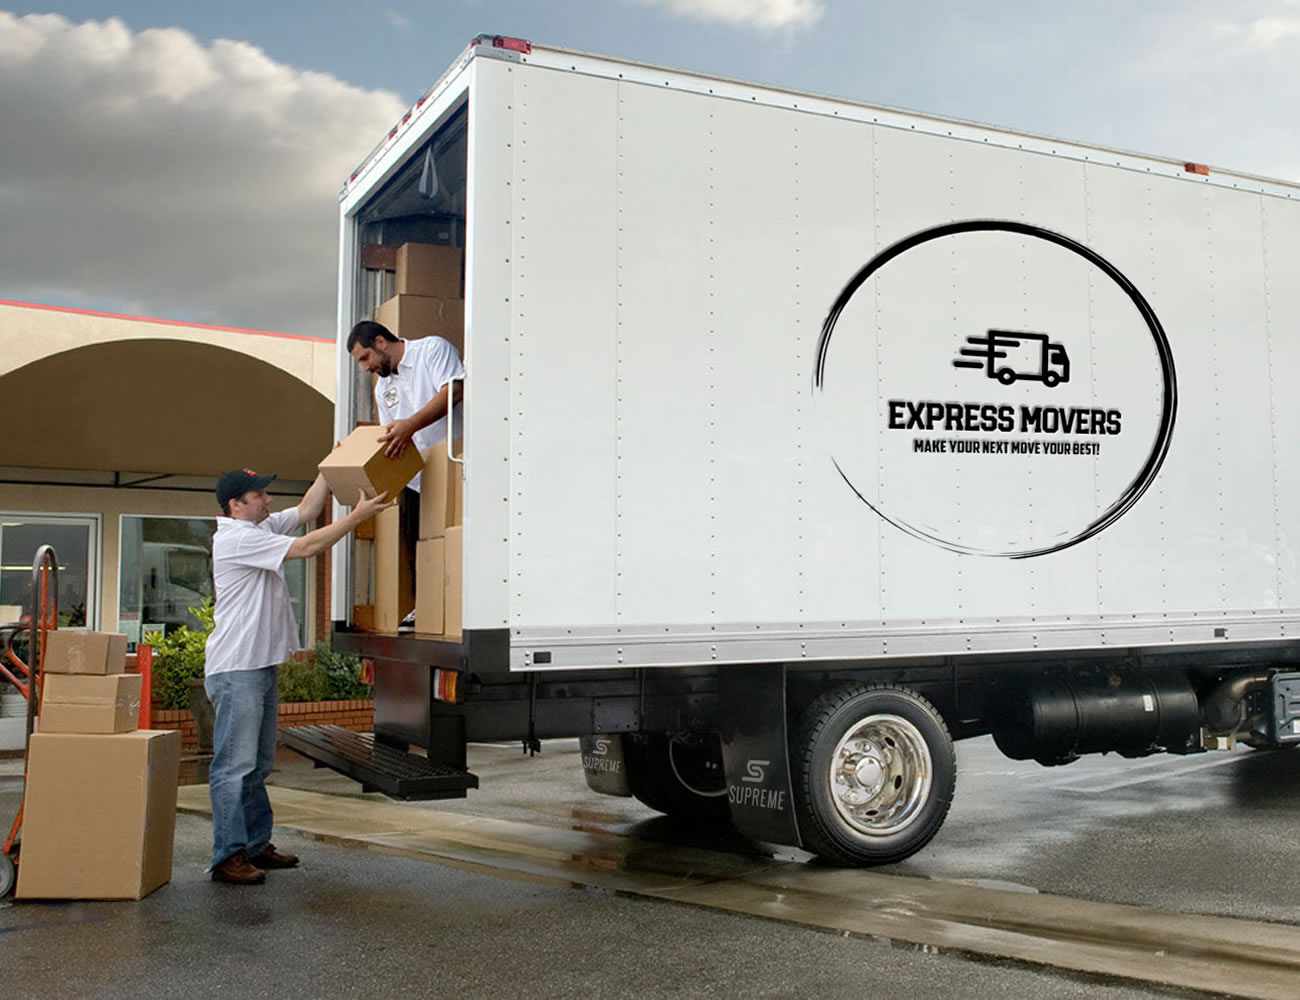 Express-Movers-truck